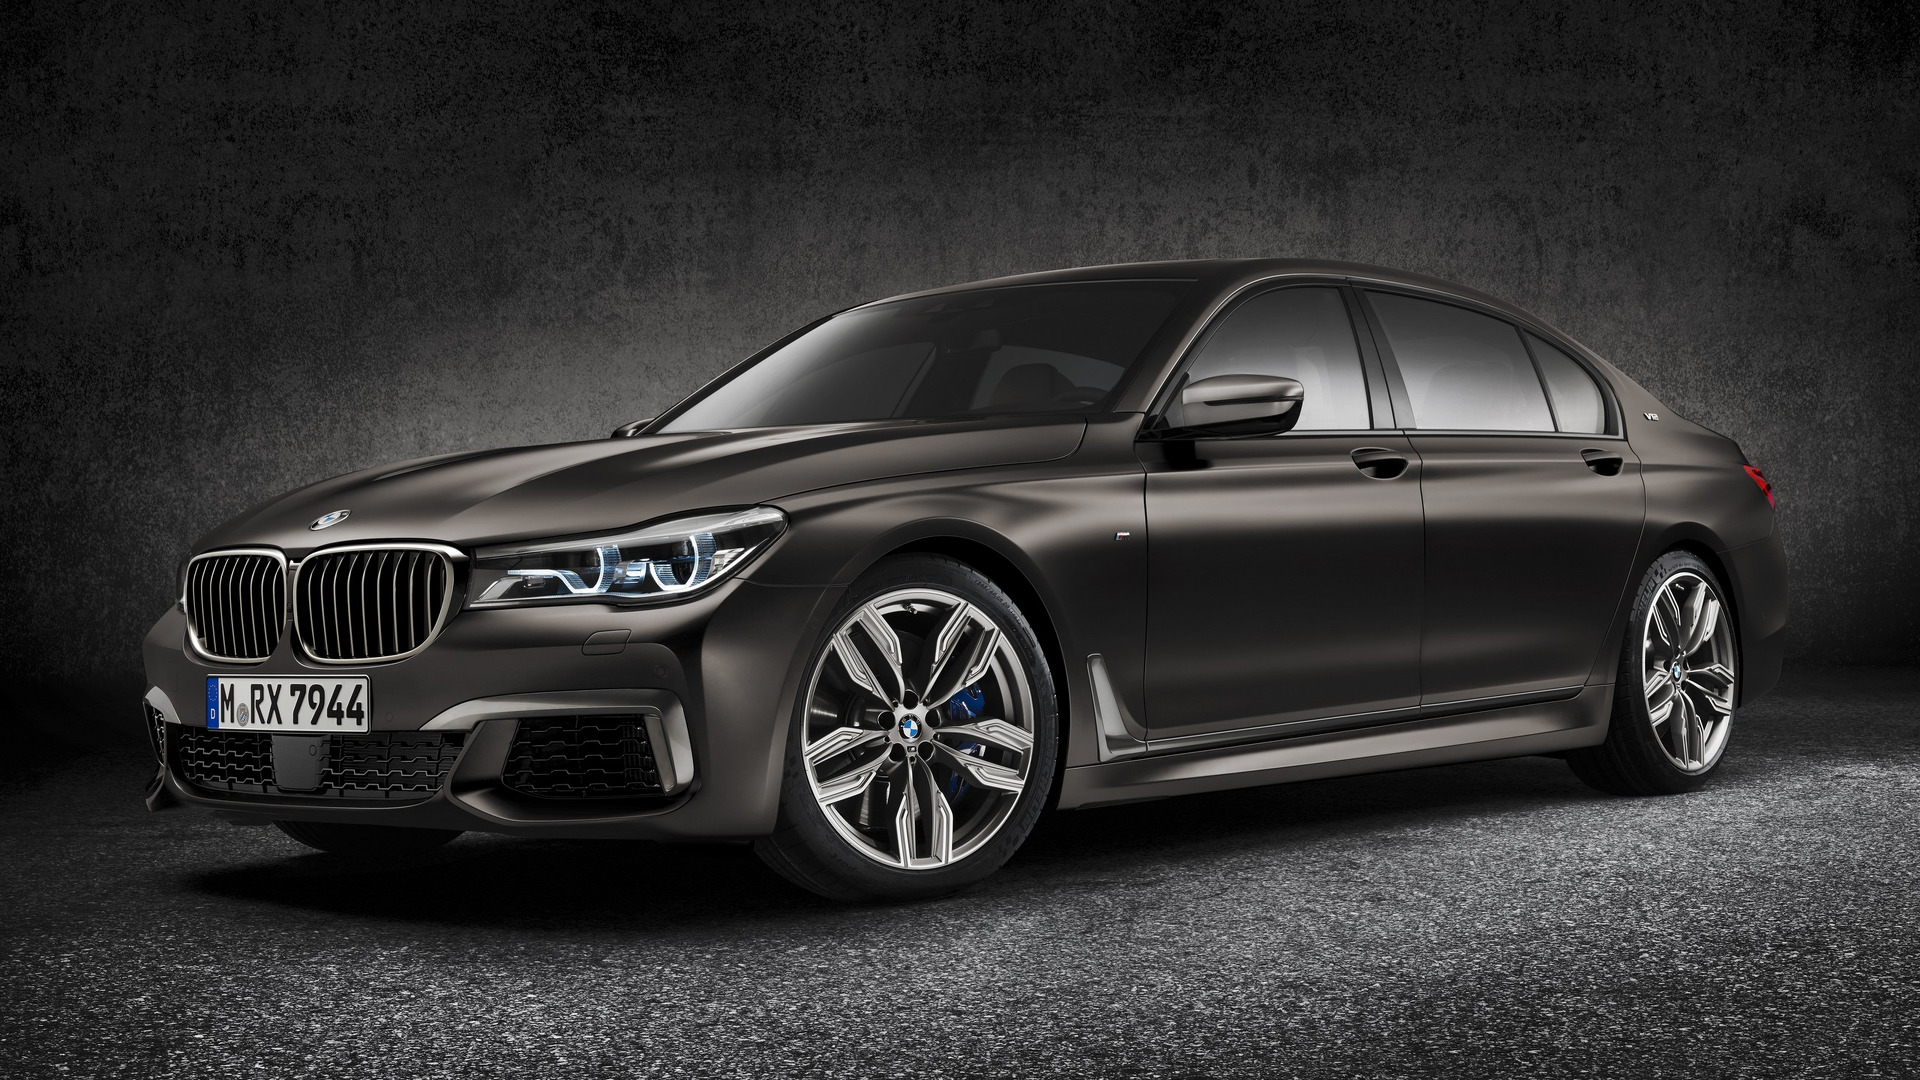 BMW prices 12 cylinder M760i xDrive from $153 800